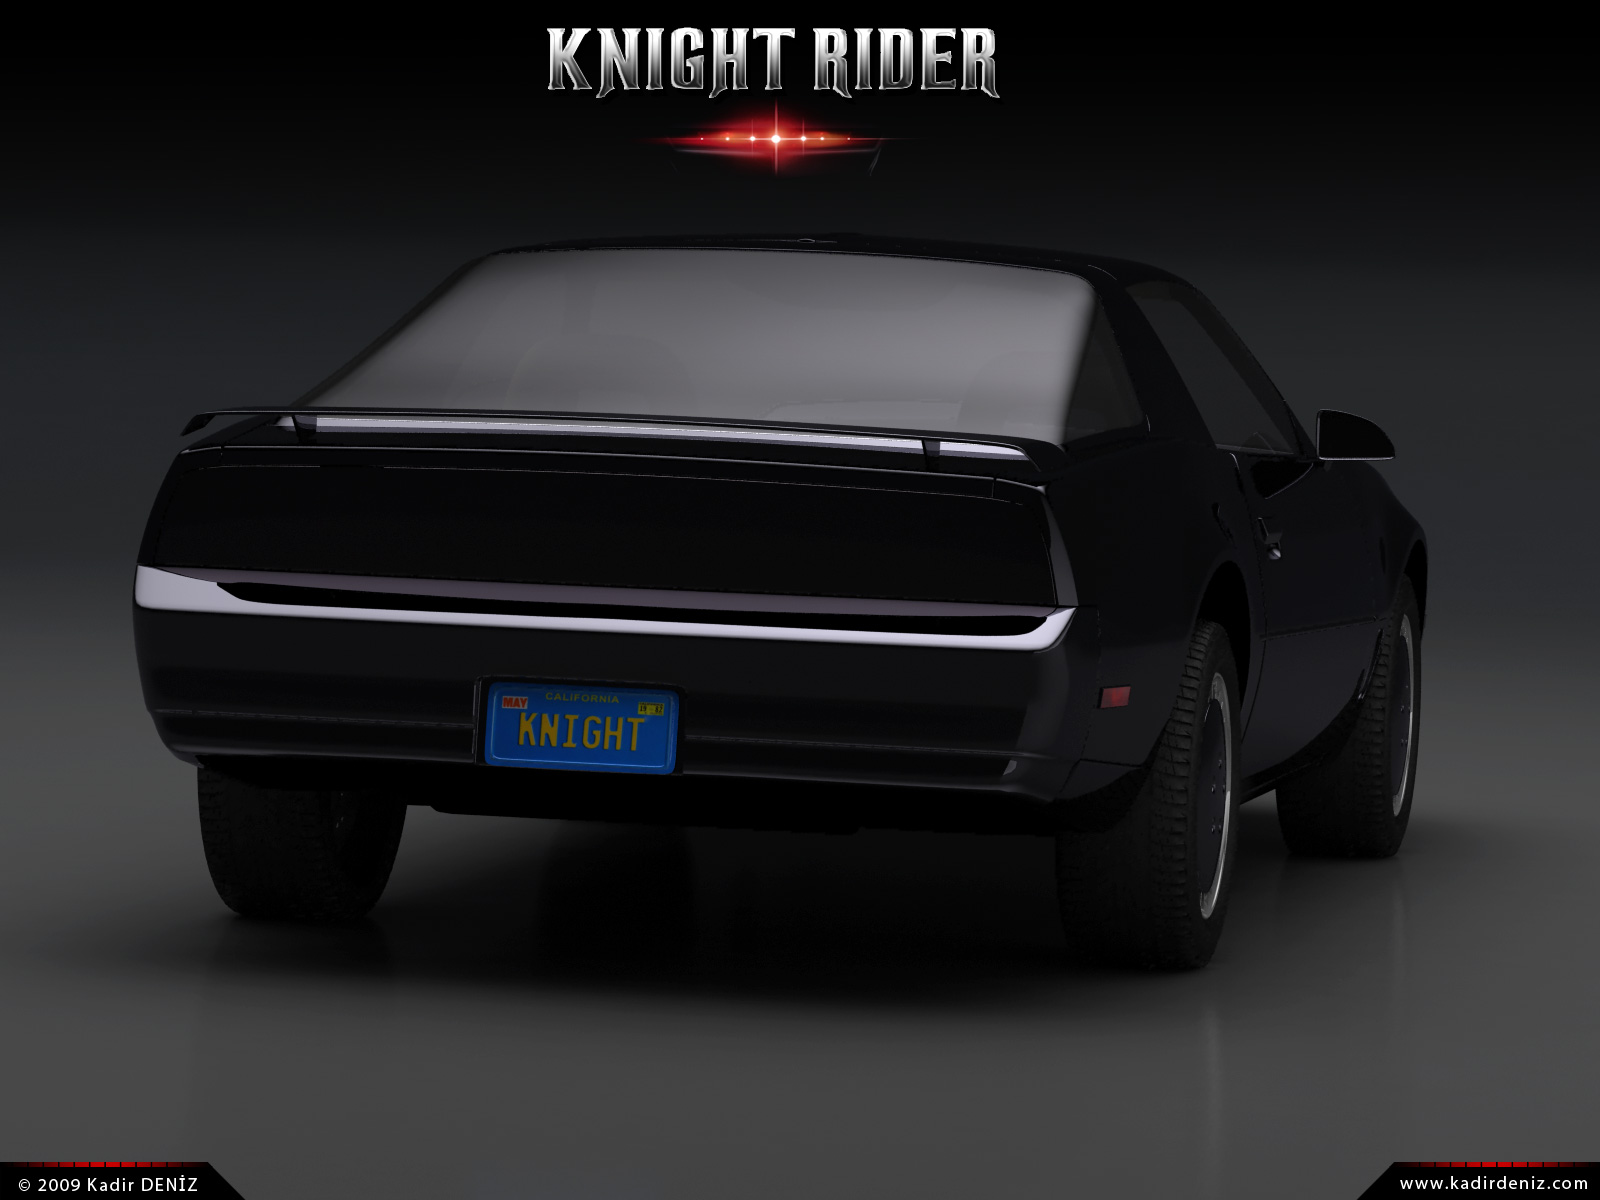 Knight rider 3d art erotic movies